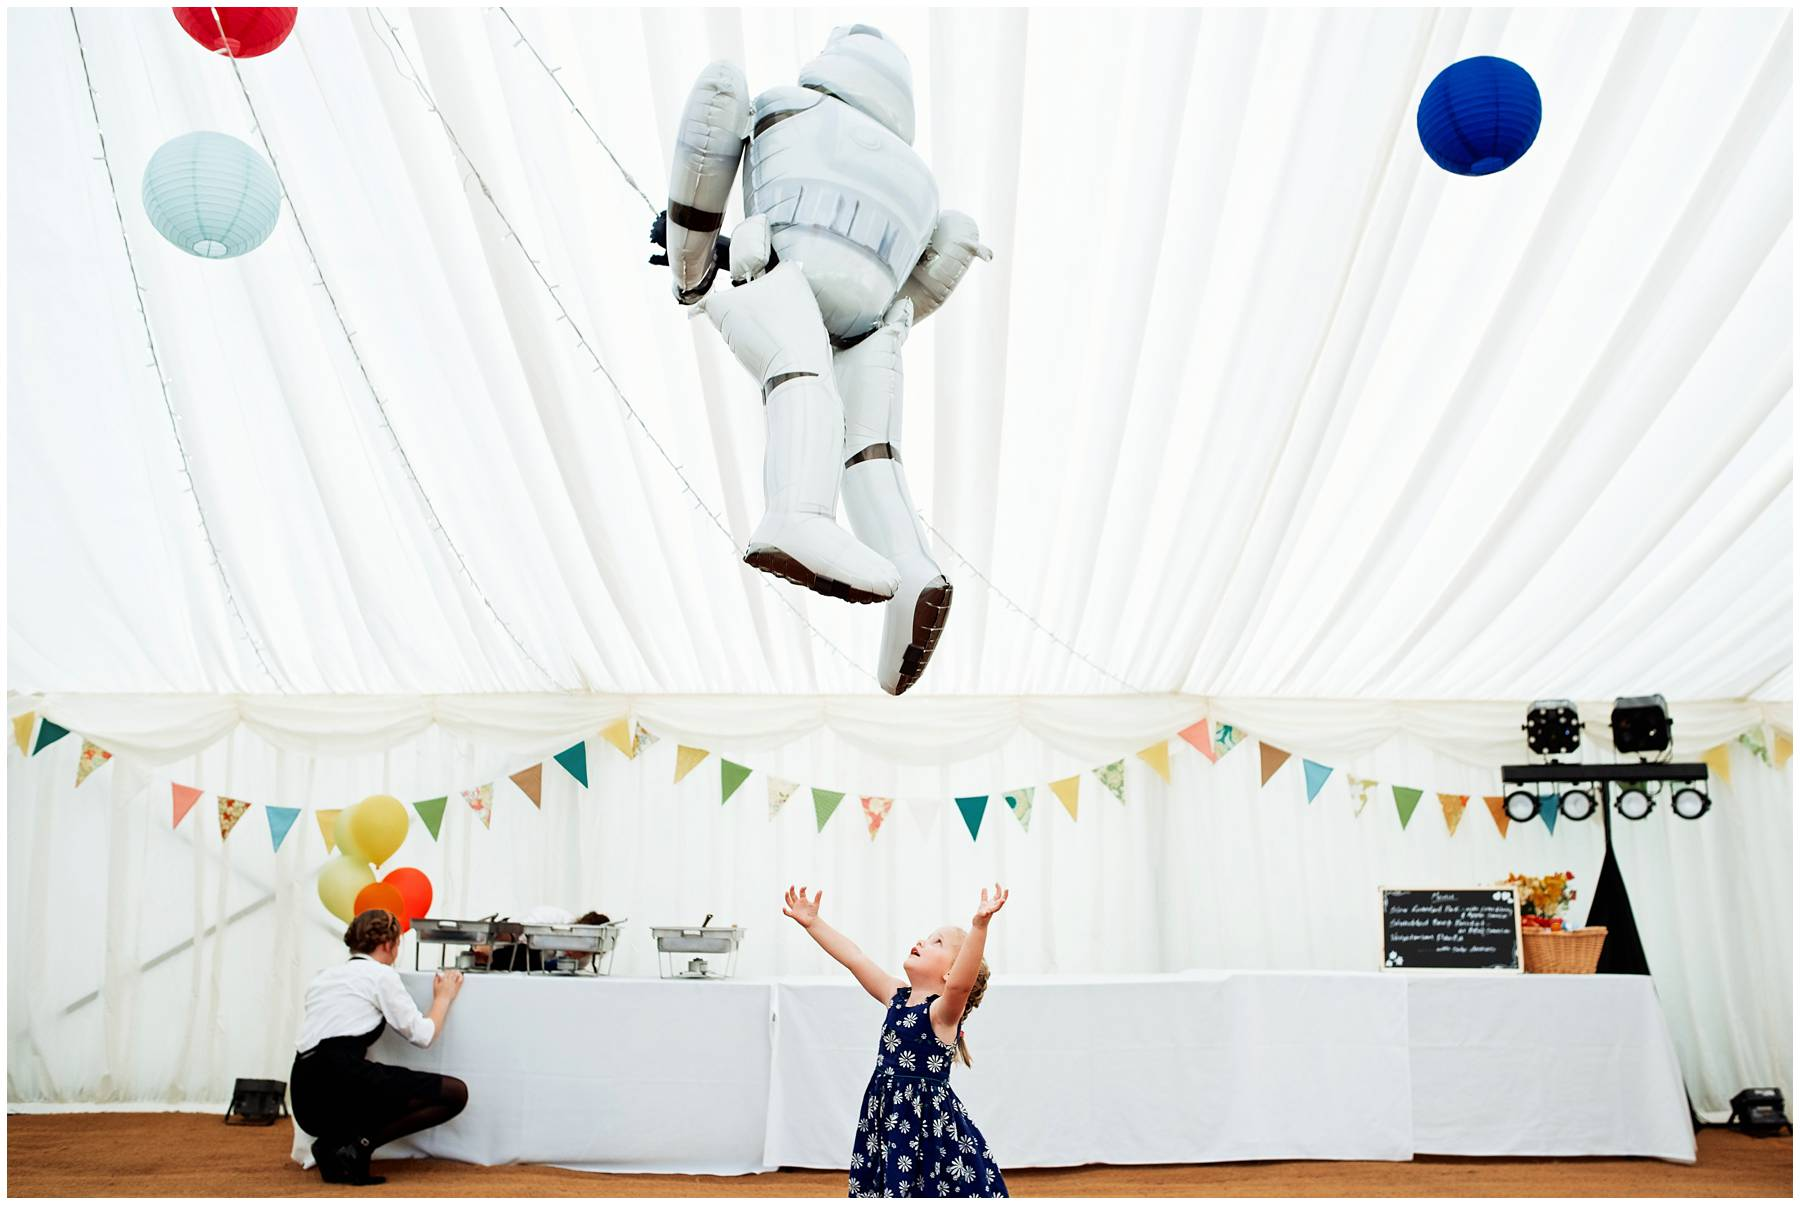 Storm Trooper balloon at a wedding